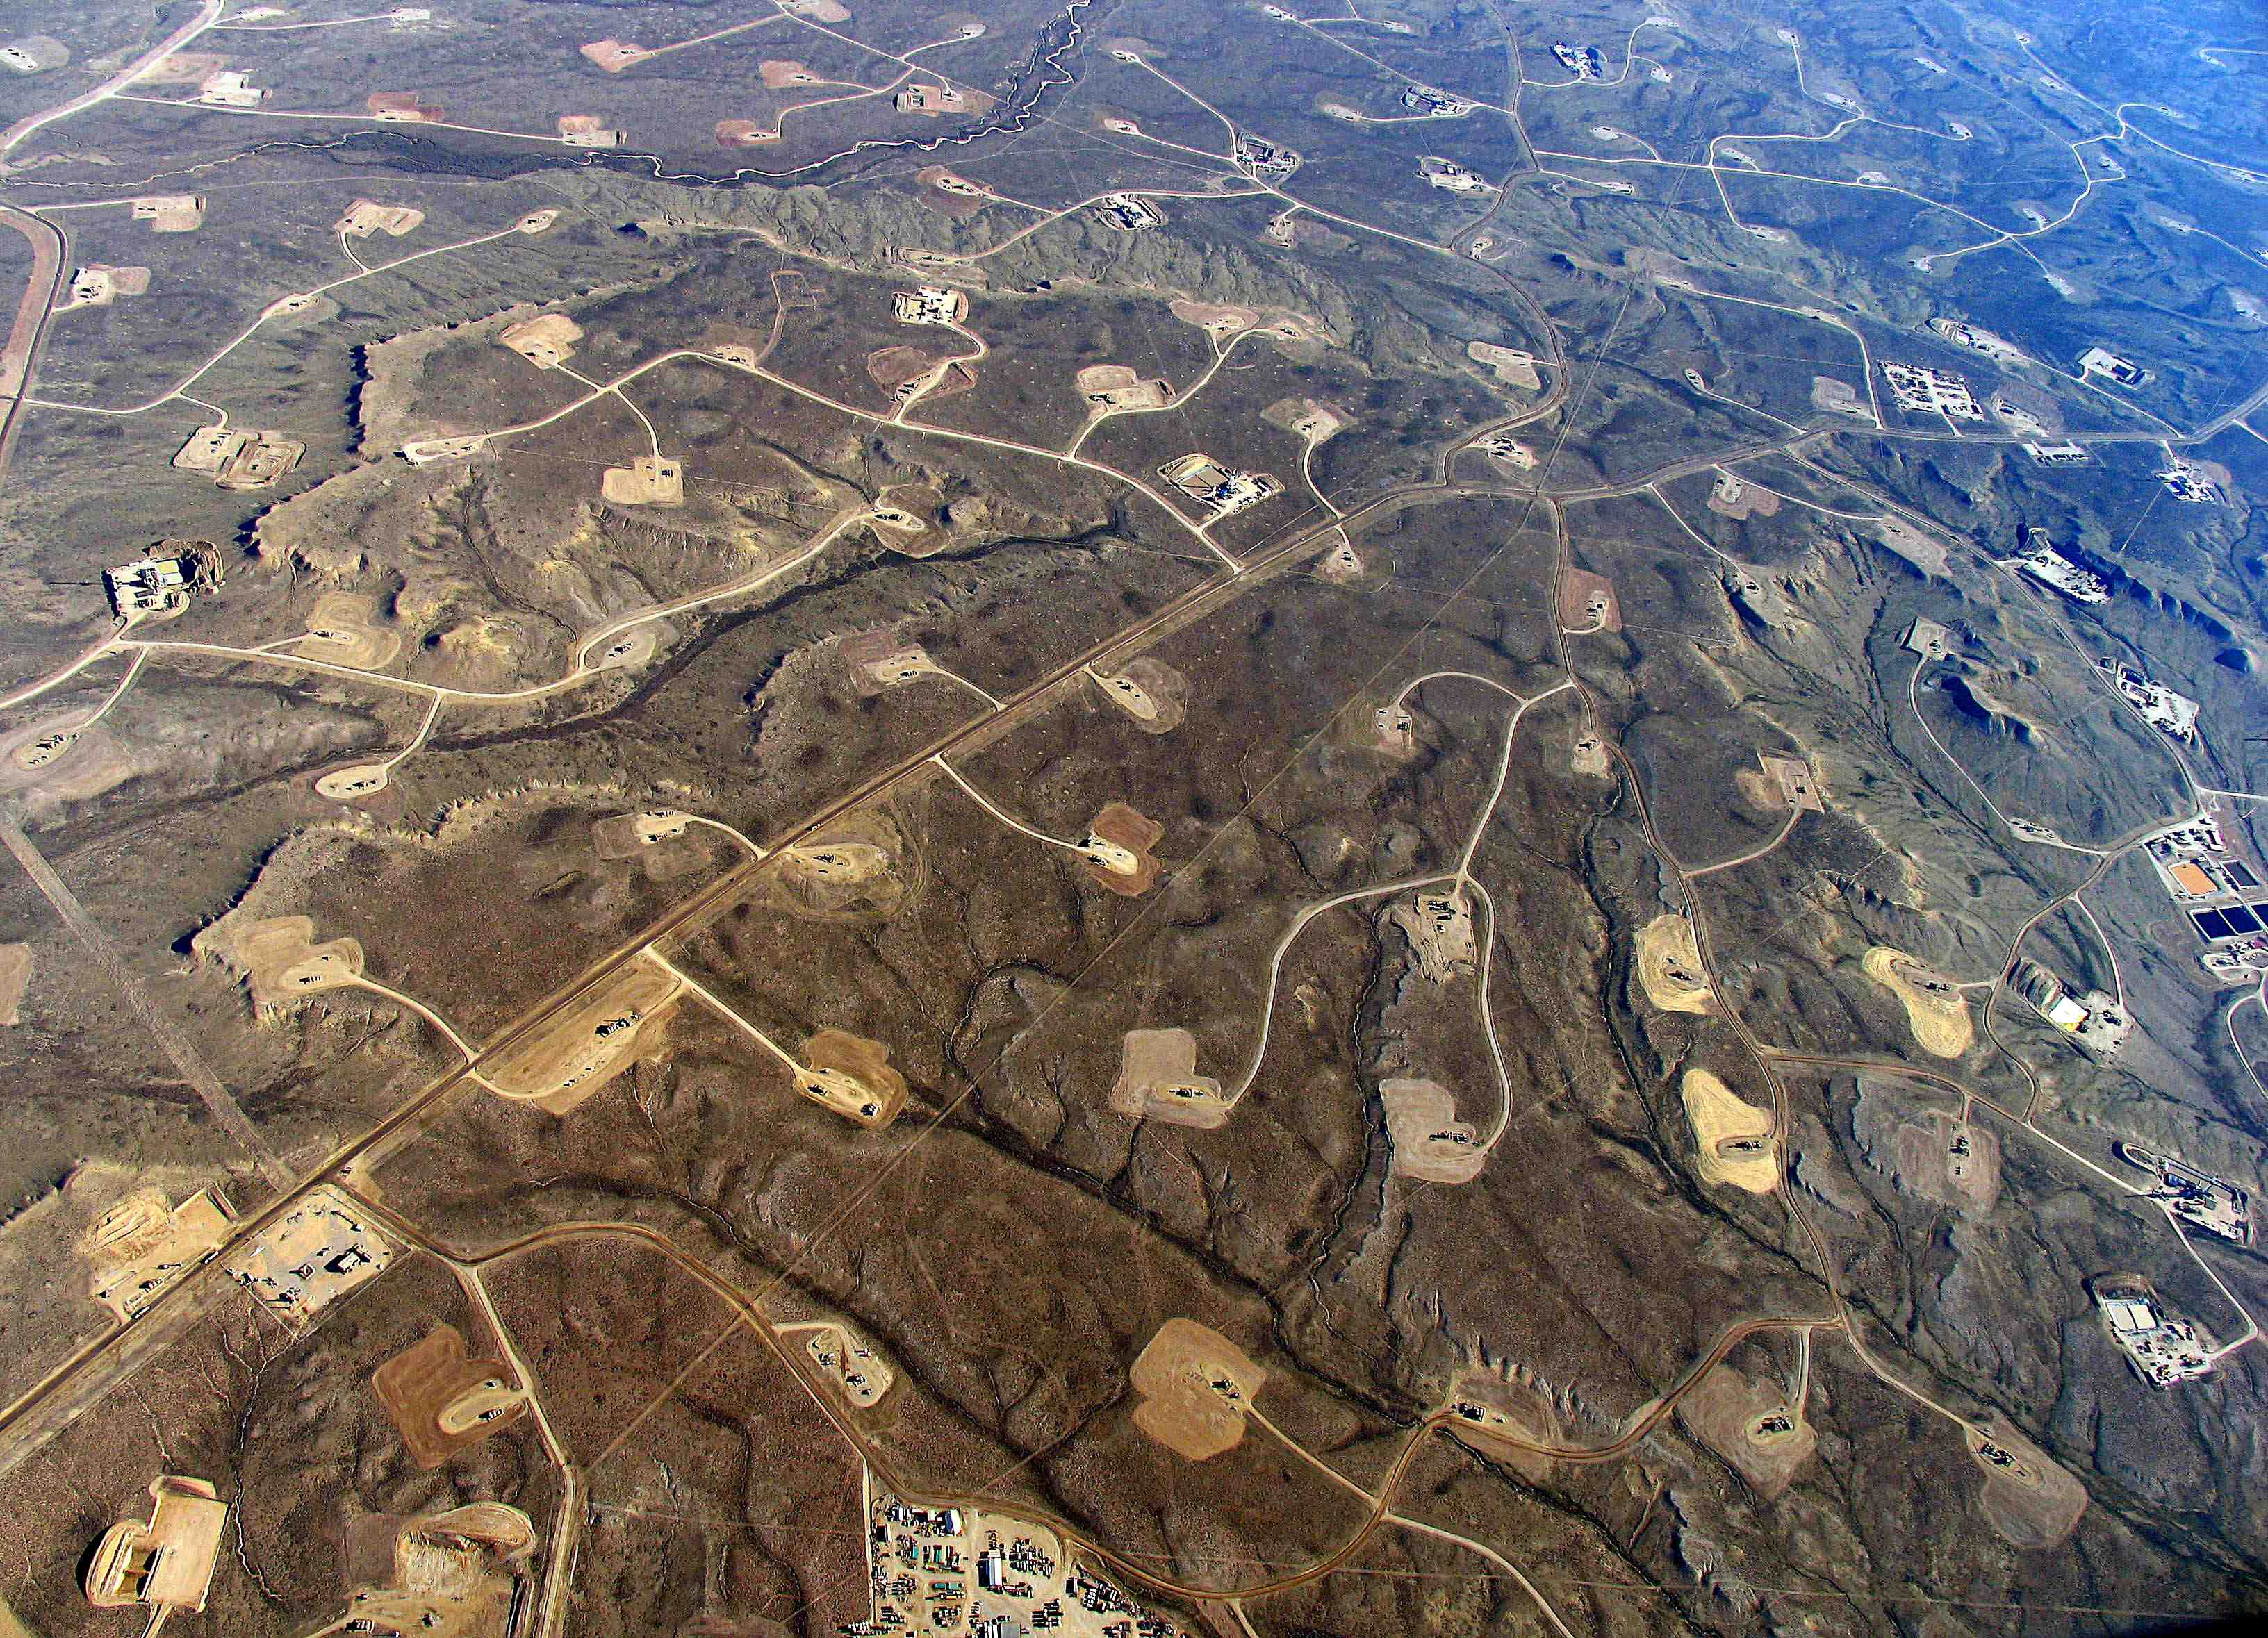 The Fracking Decade